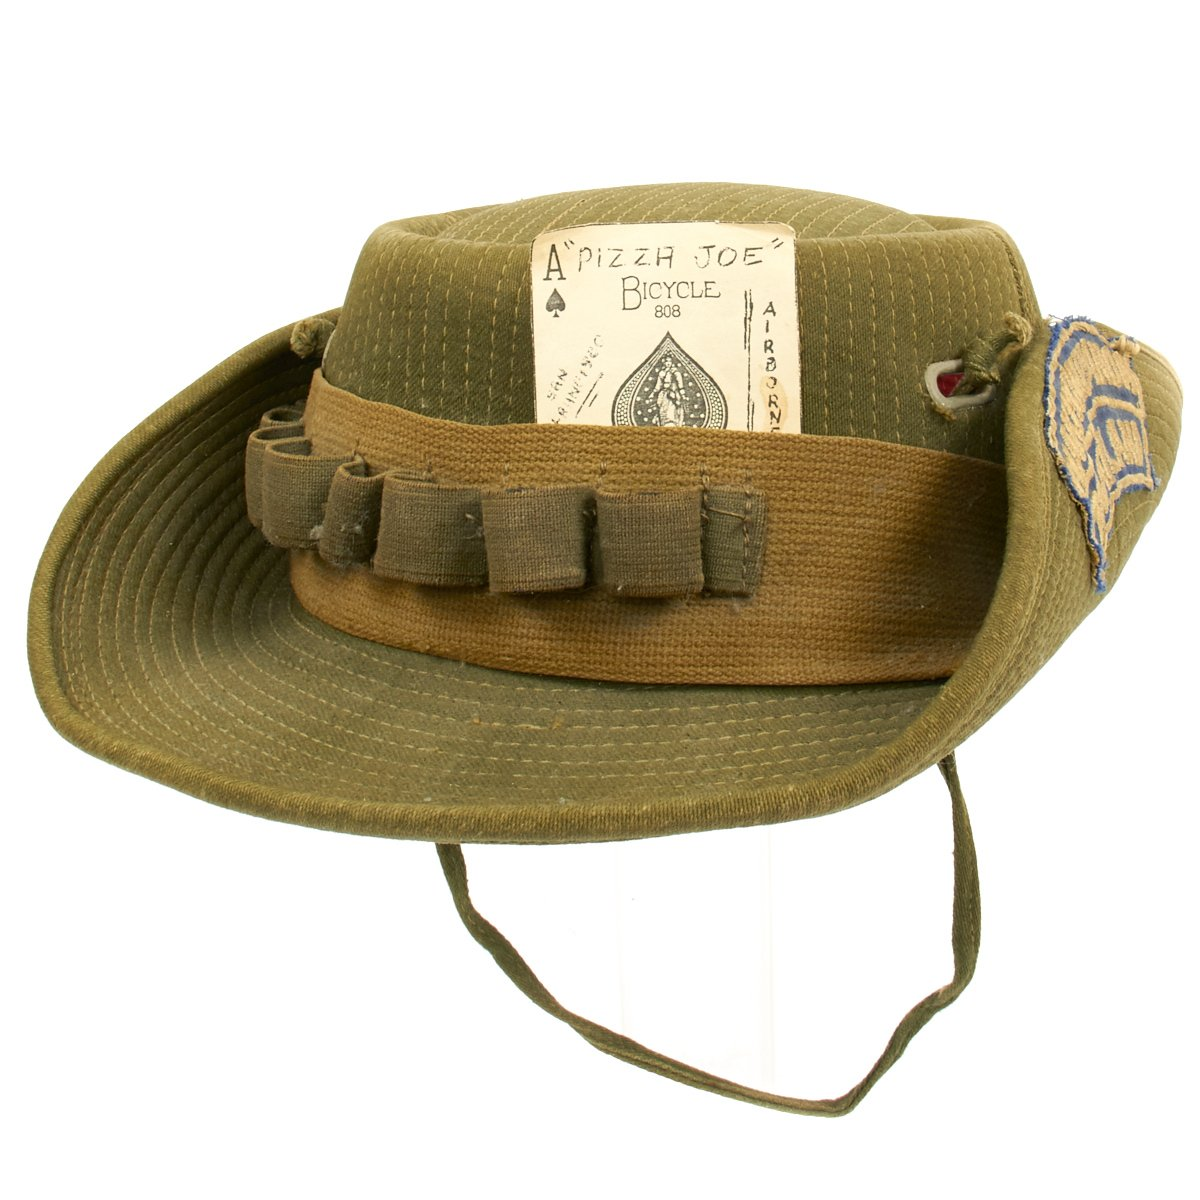 0b4ec9cea60 Original U.S. Vietnam War Slouch Boonie Hat with Rocker Patch - Nakhon  Phanom Thailand